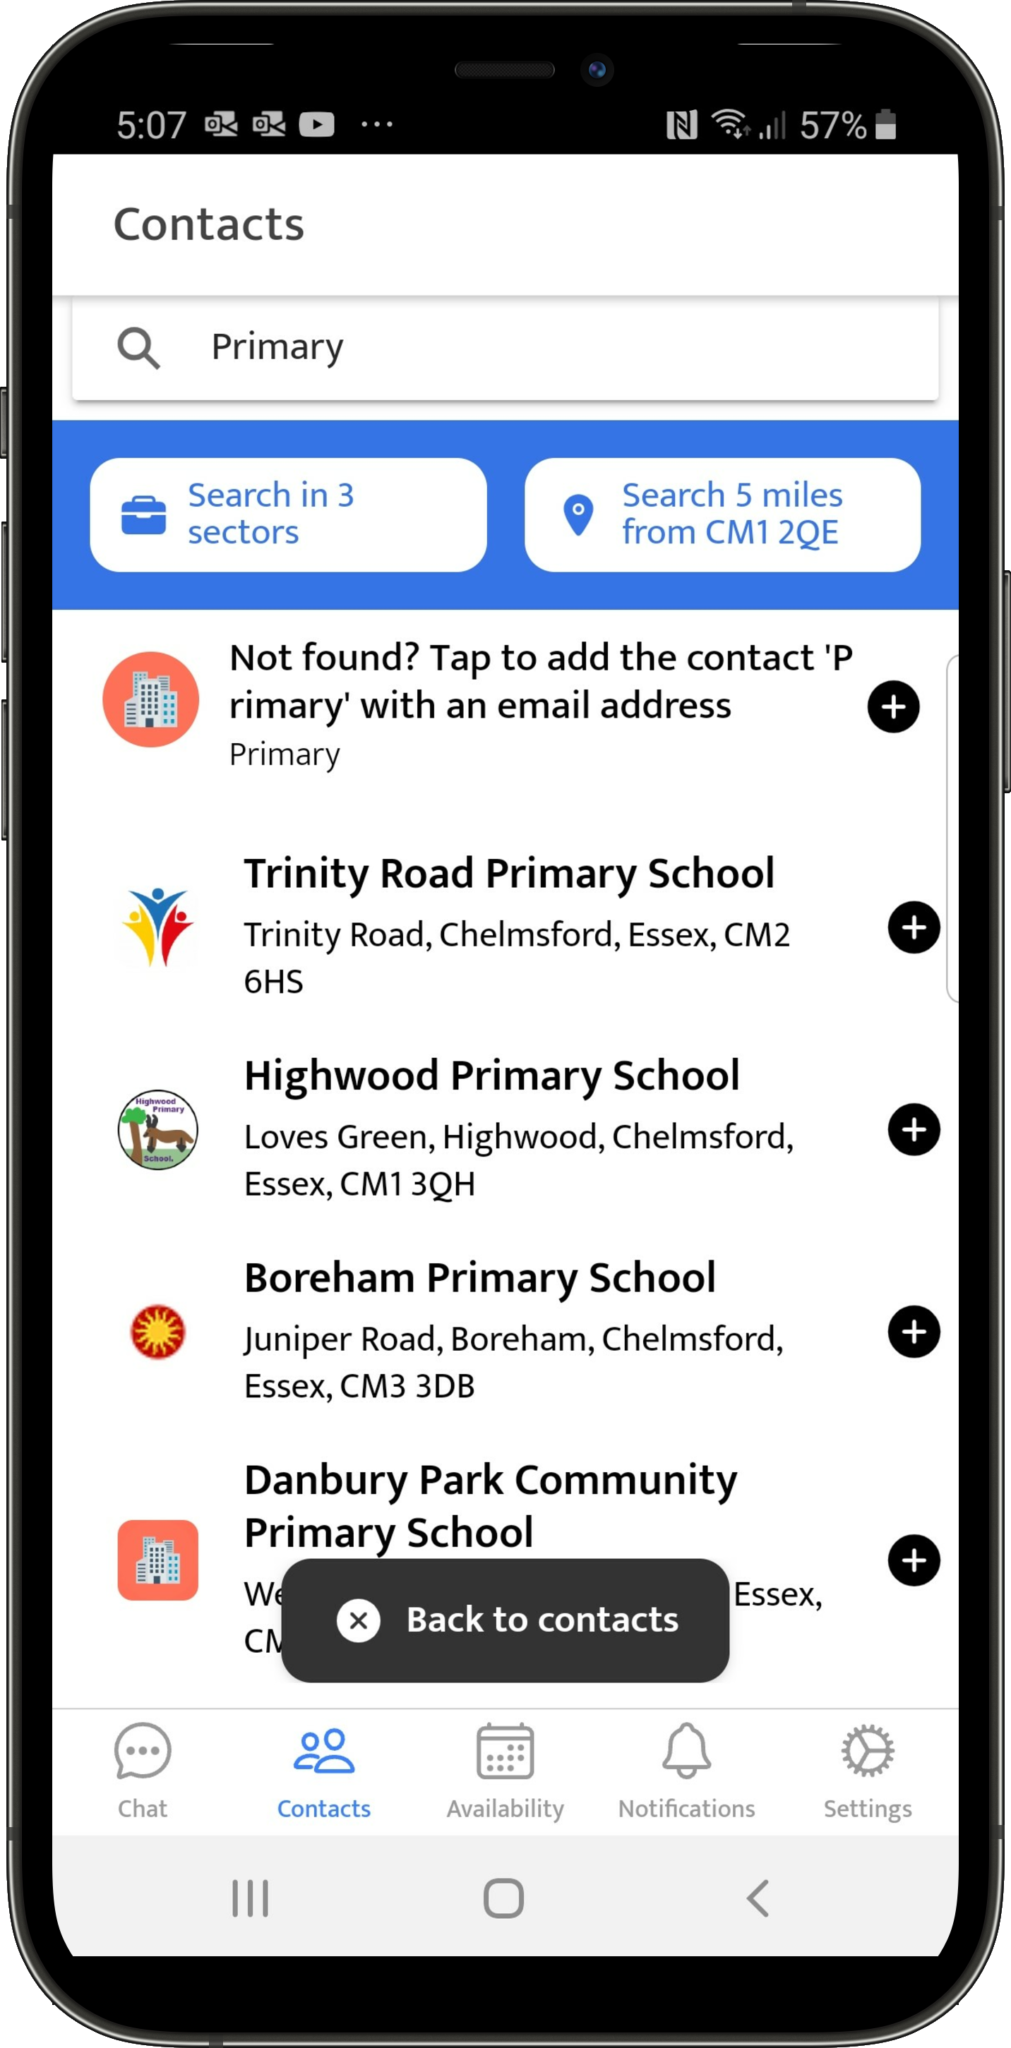 Search for preferred schools to share your availability and get offers from